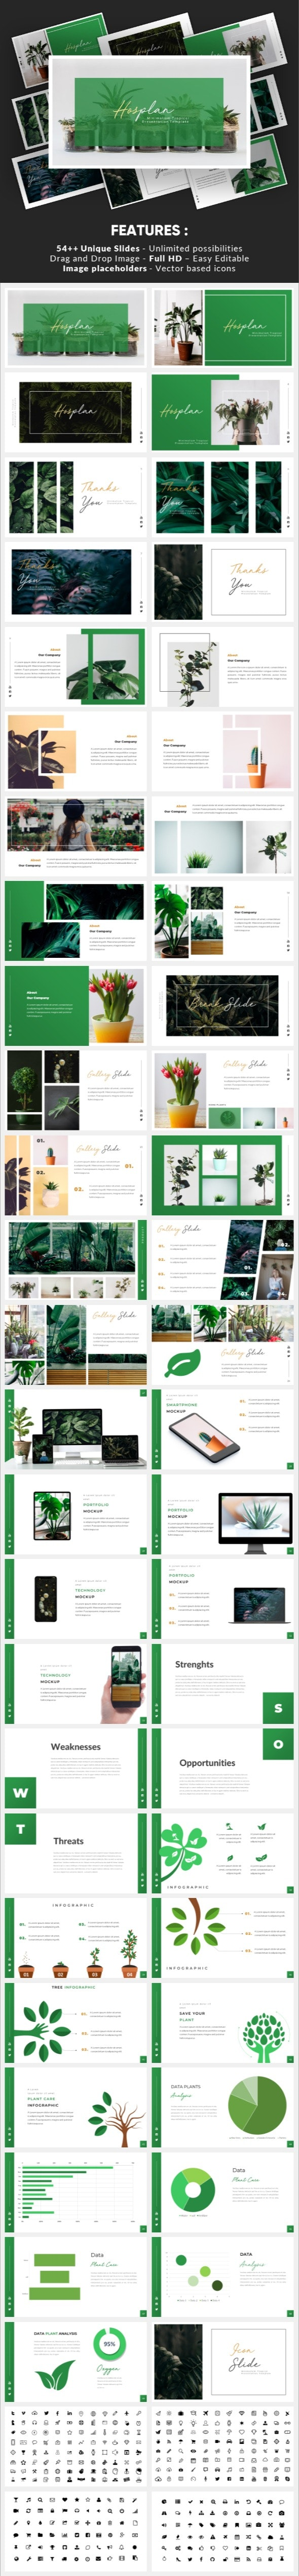 Hosplan - Minimalism Tropical Keynote Template - Nature Keynote Templates